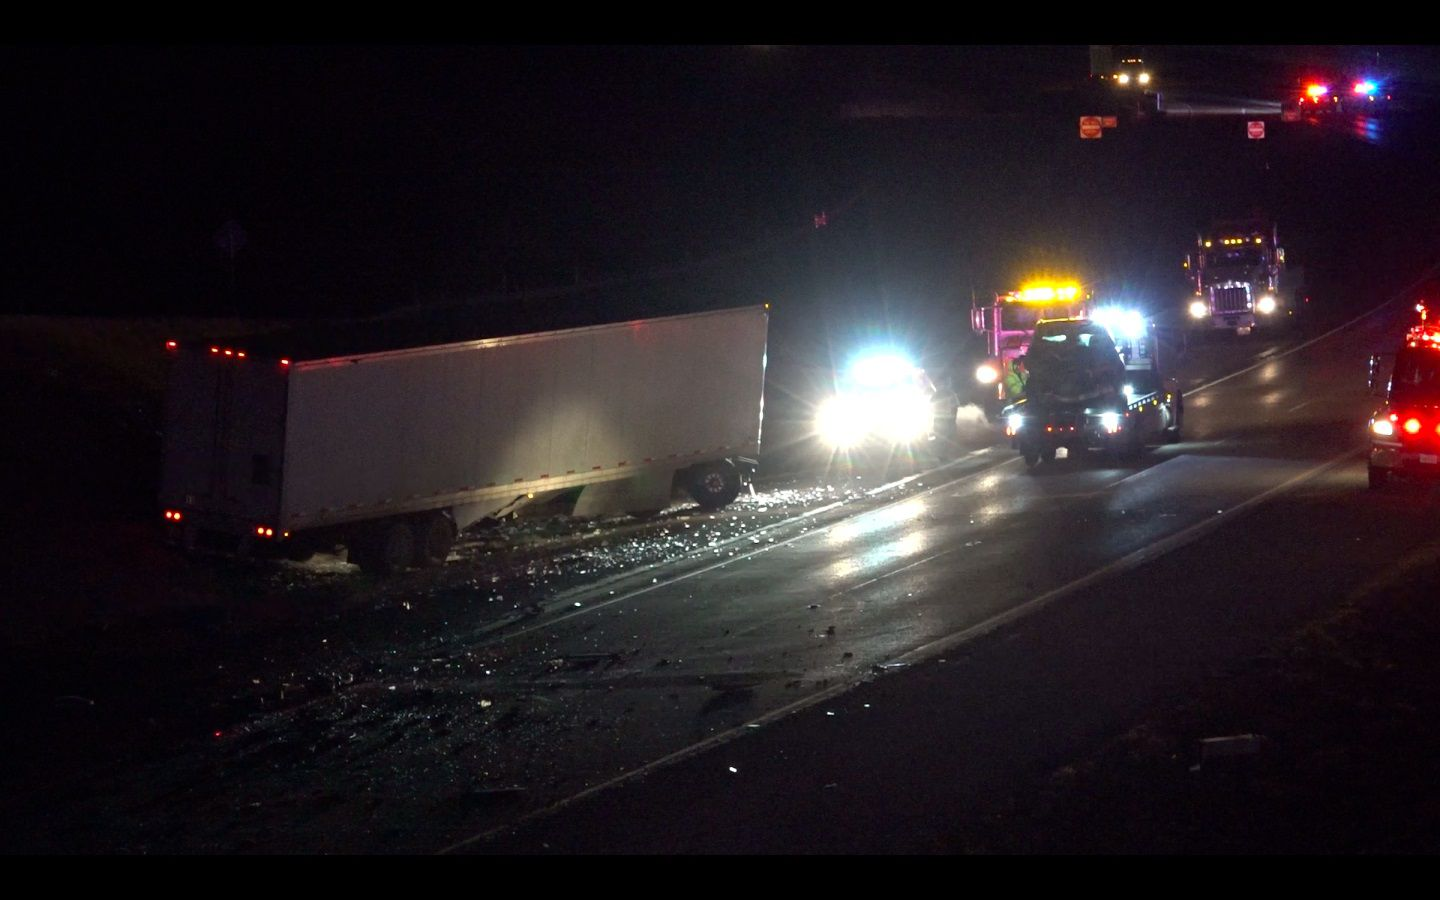 An 18-wheeler rests along the side of State Highway 287 in Rhome after it struck a guardrail that became dislodged from a previous crash and wound up in the road.